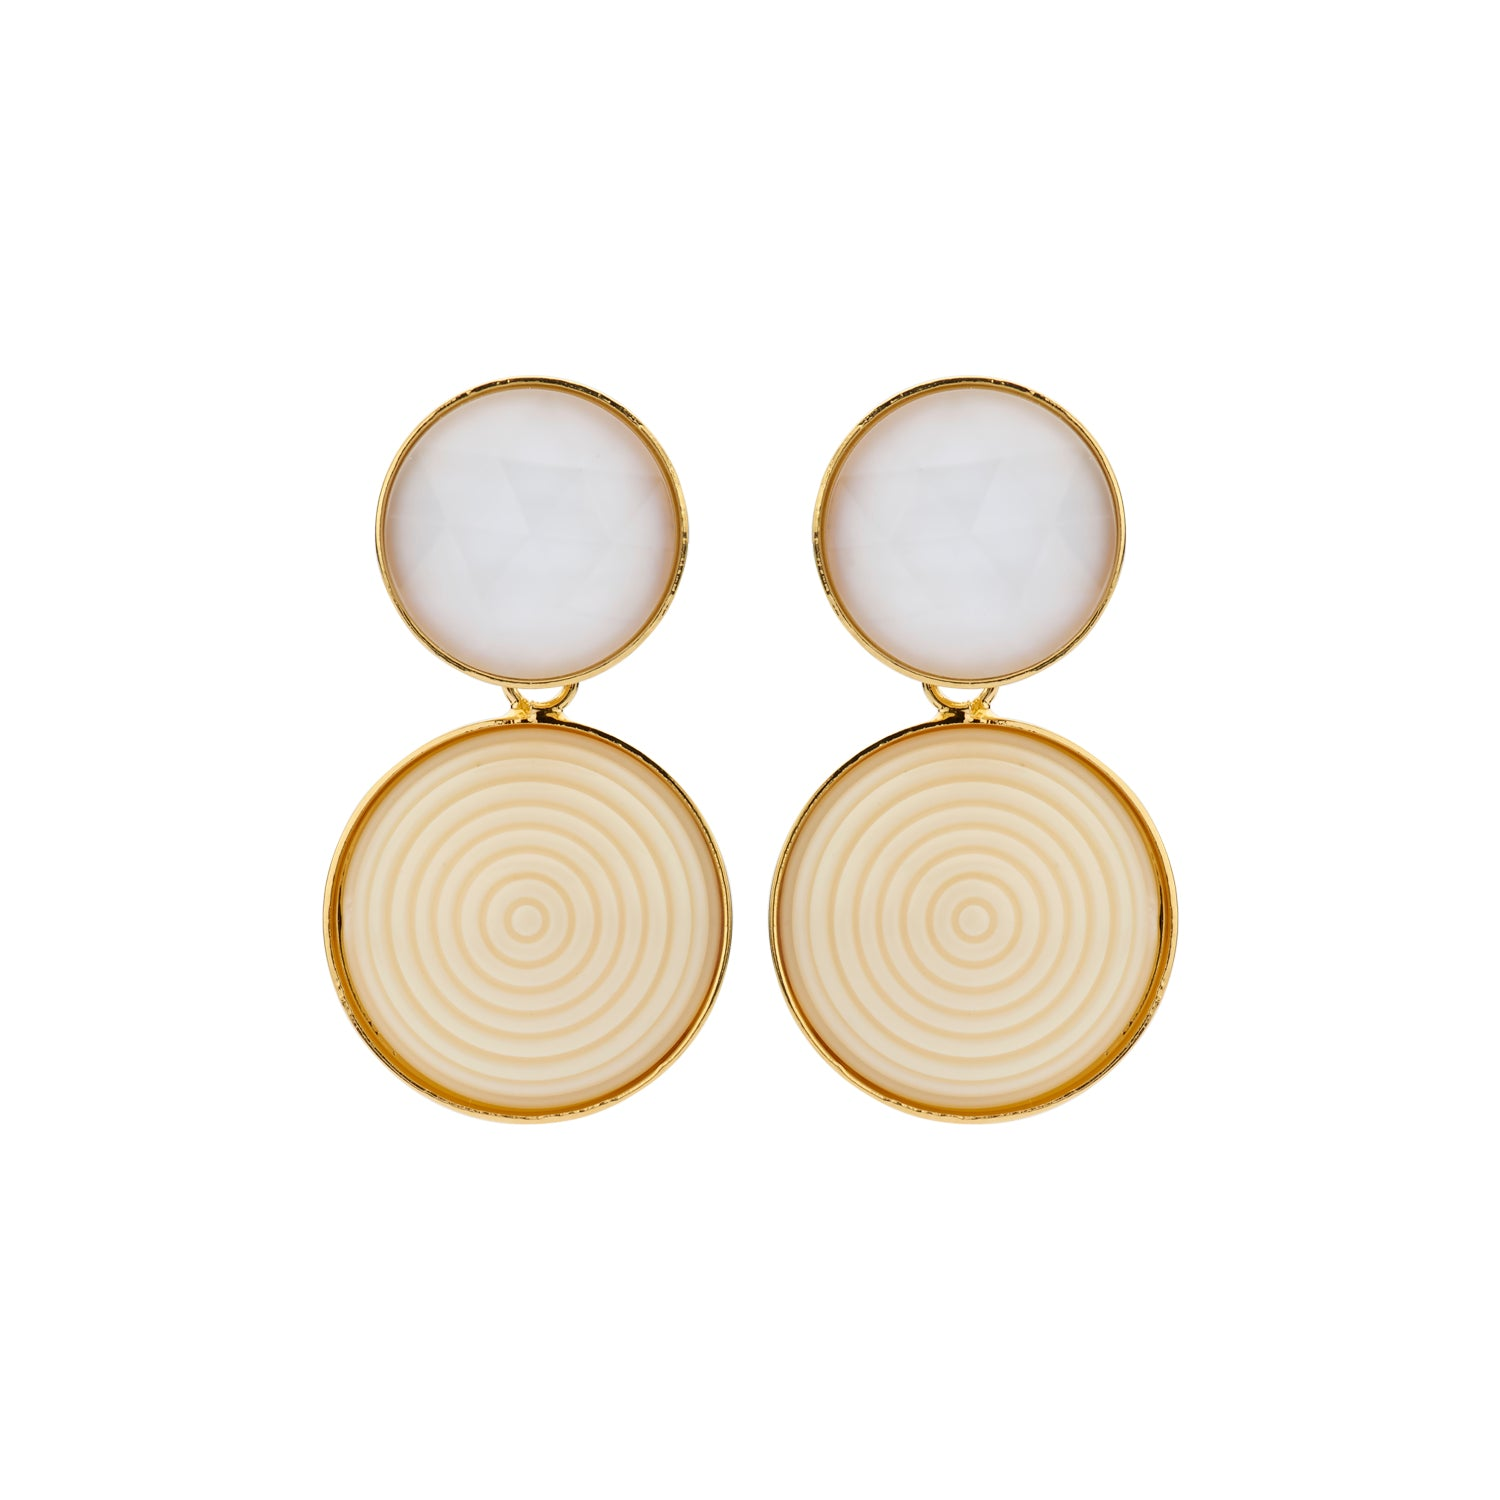 Lines Caro ivory earrings - Souvenirs de Pomme